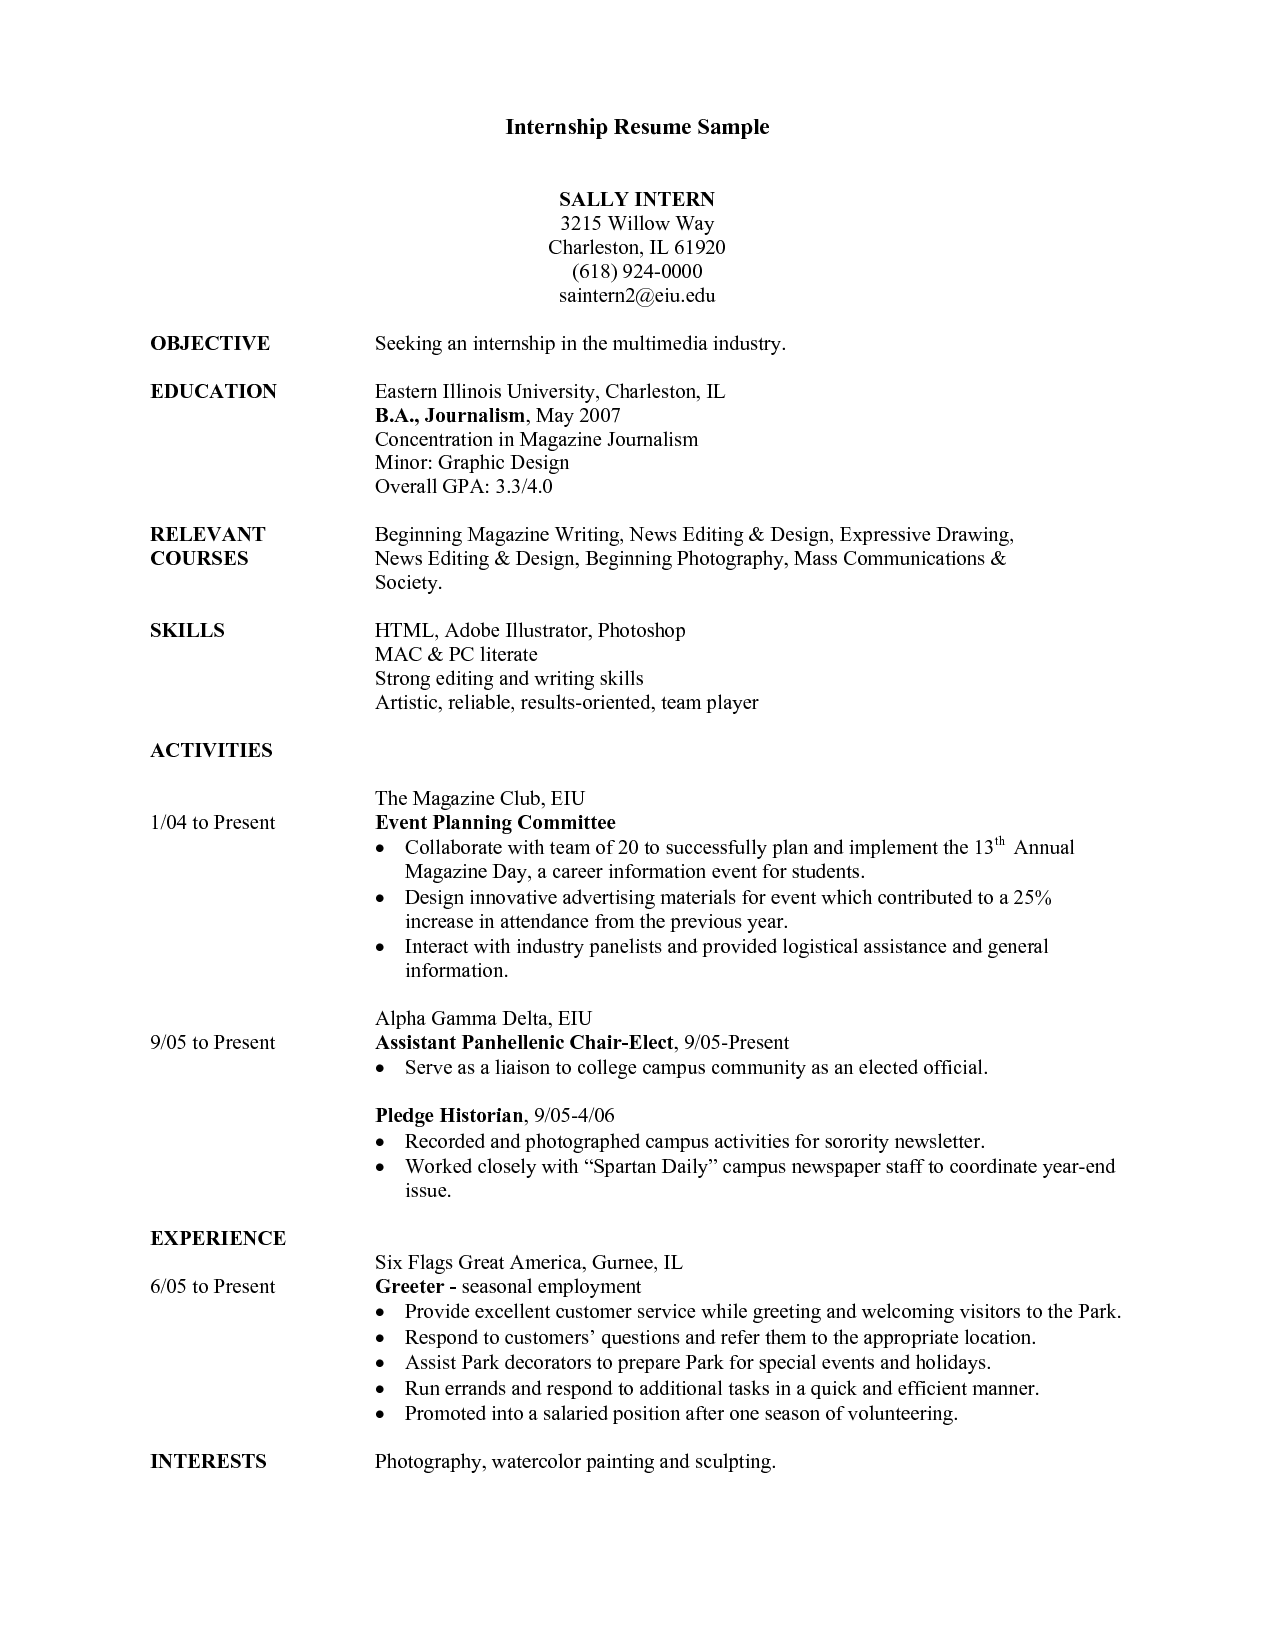 Resume Template College Intern Resume Template Builder    Http://www.jobresume.